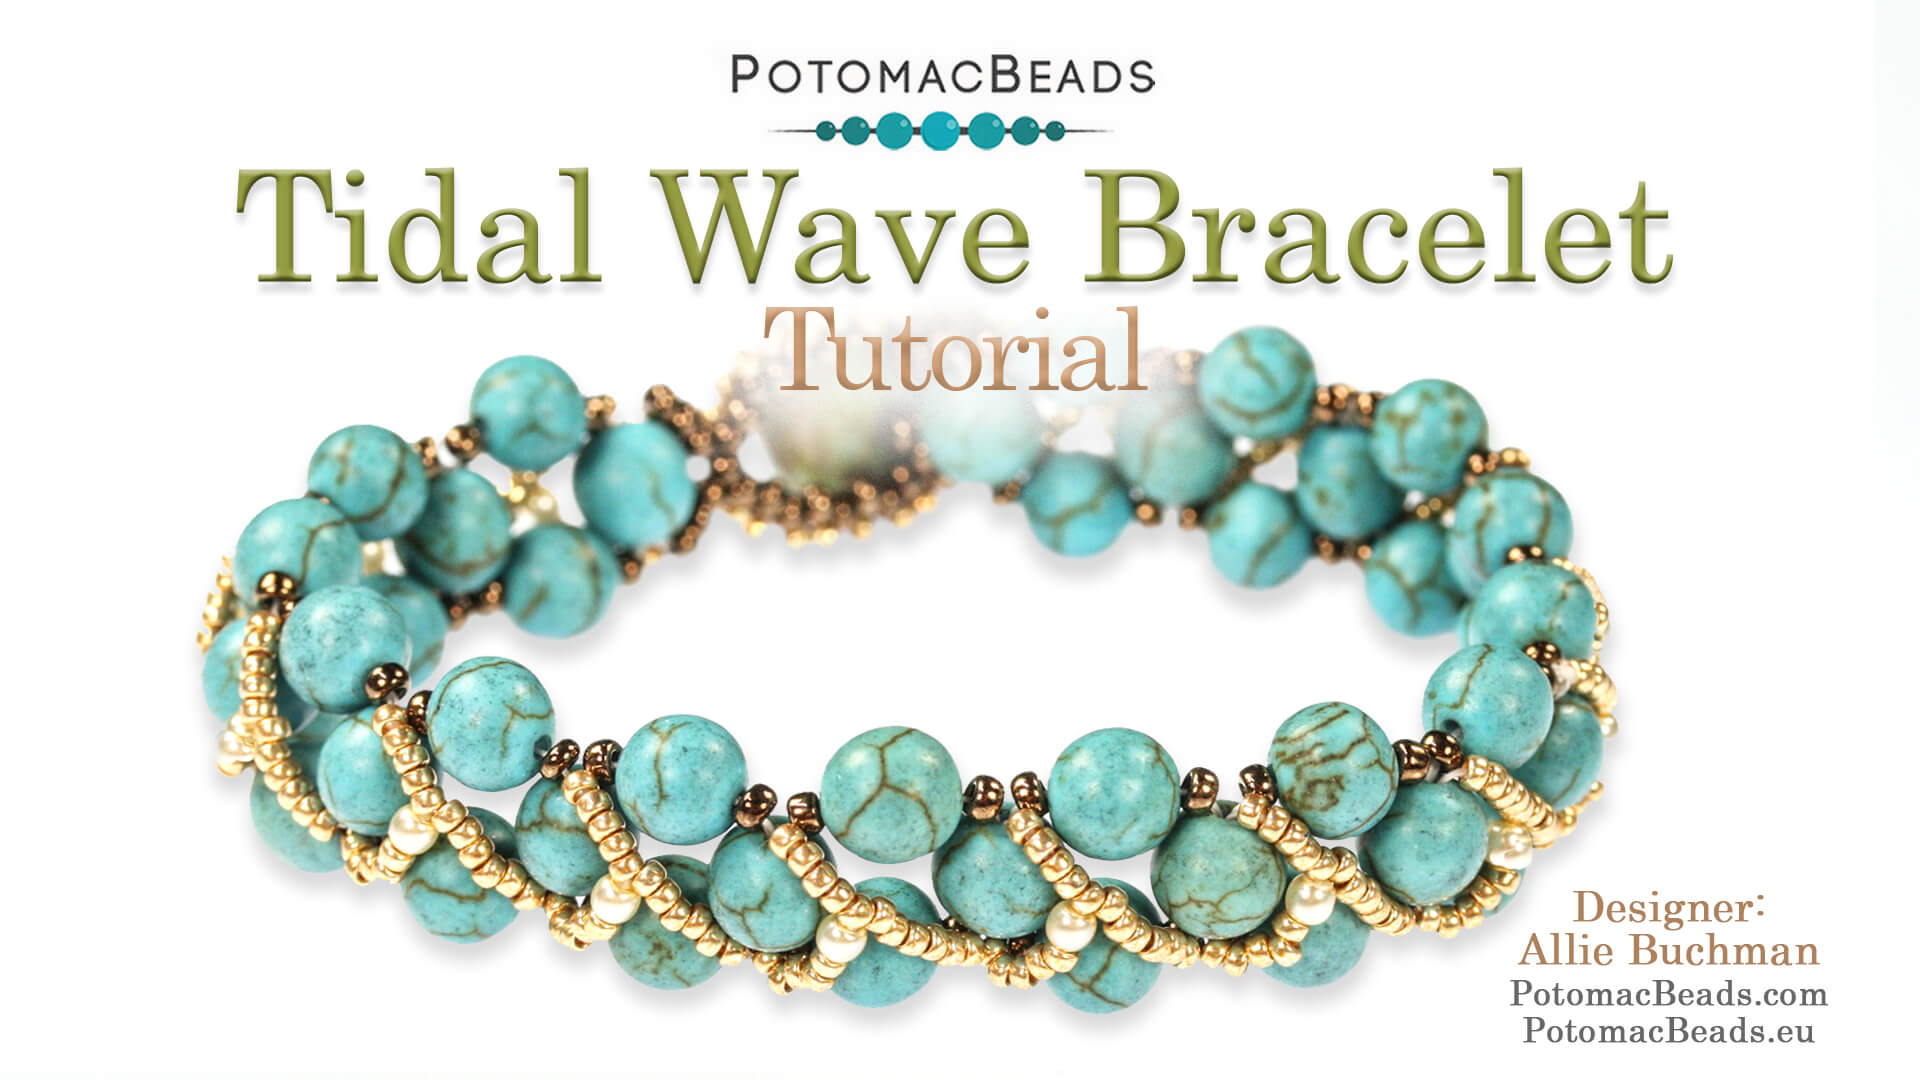 How to Bead Jewelry / Videos Sorted by Beads / Pearl Videos (Czech, Freshwater, Potomac Pearls) / Tidal Wave Bracelet Tutorial